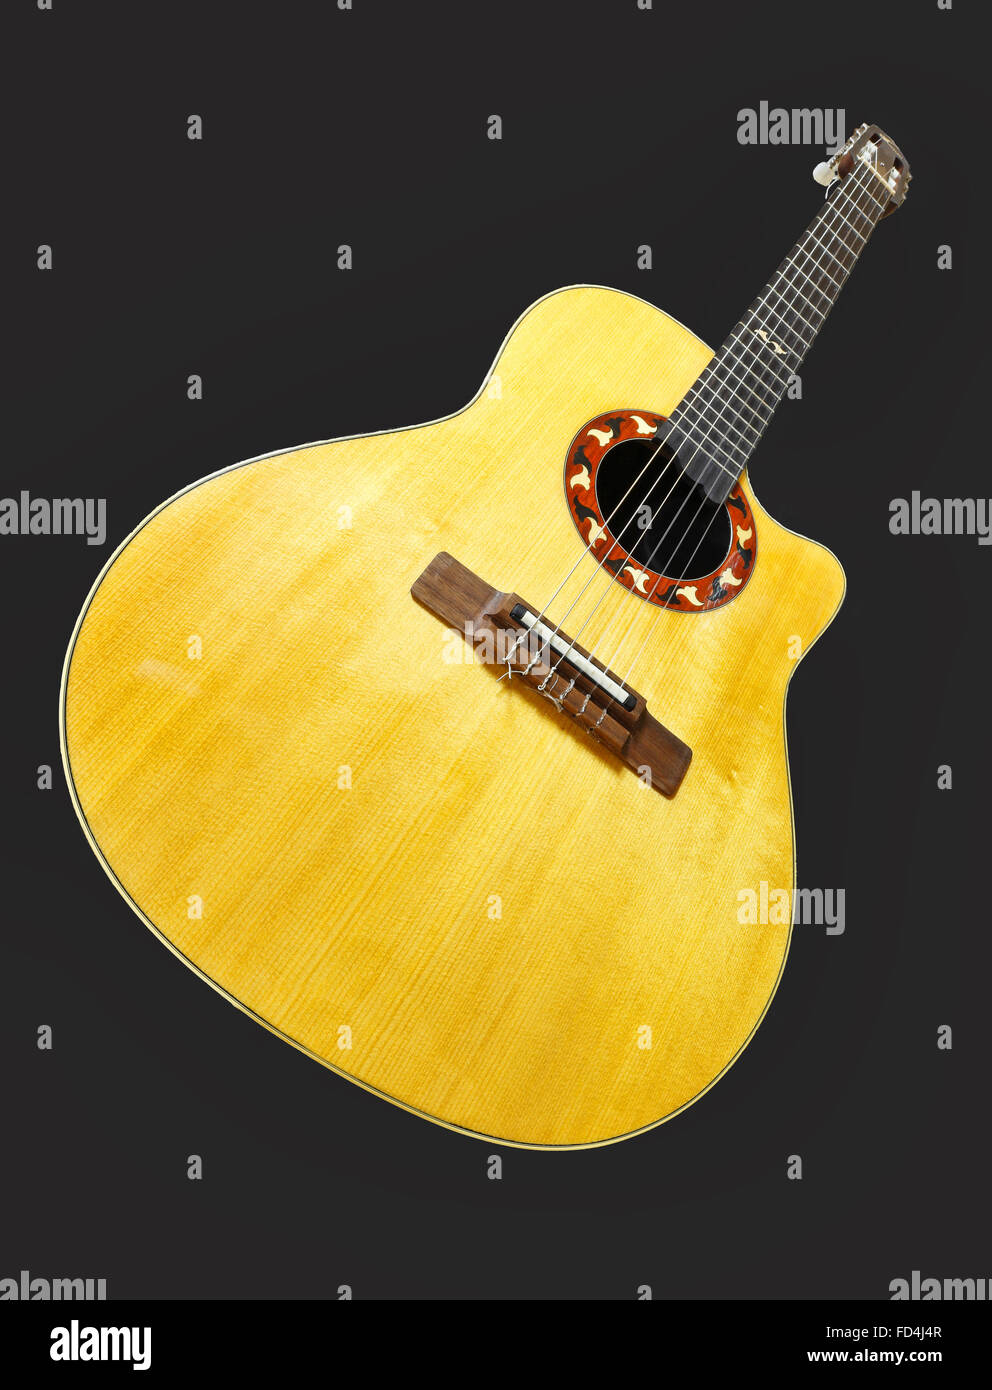 A classic guitar from close view with perspective - Stock Image